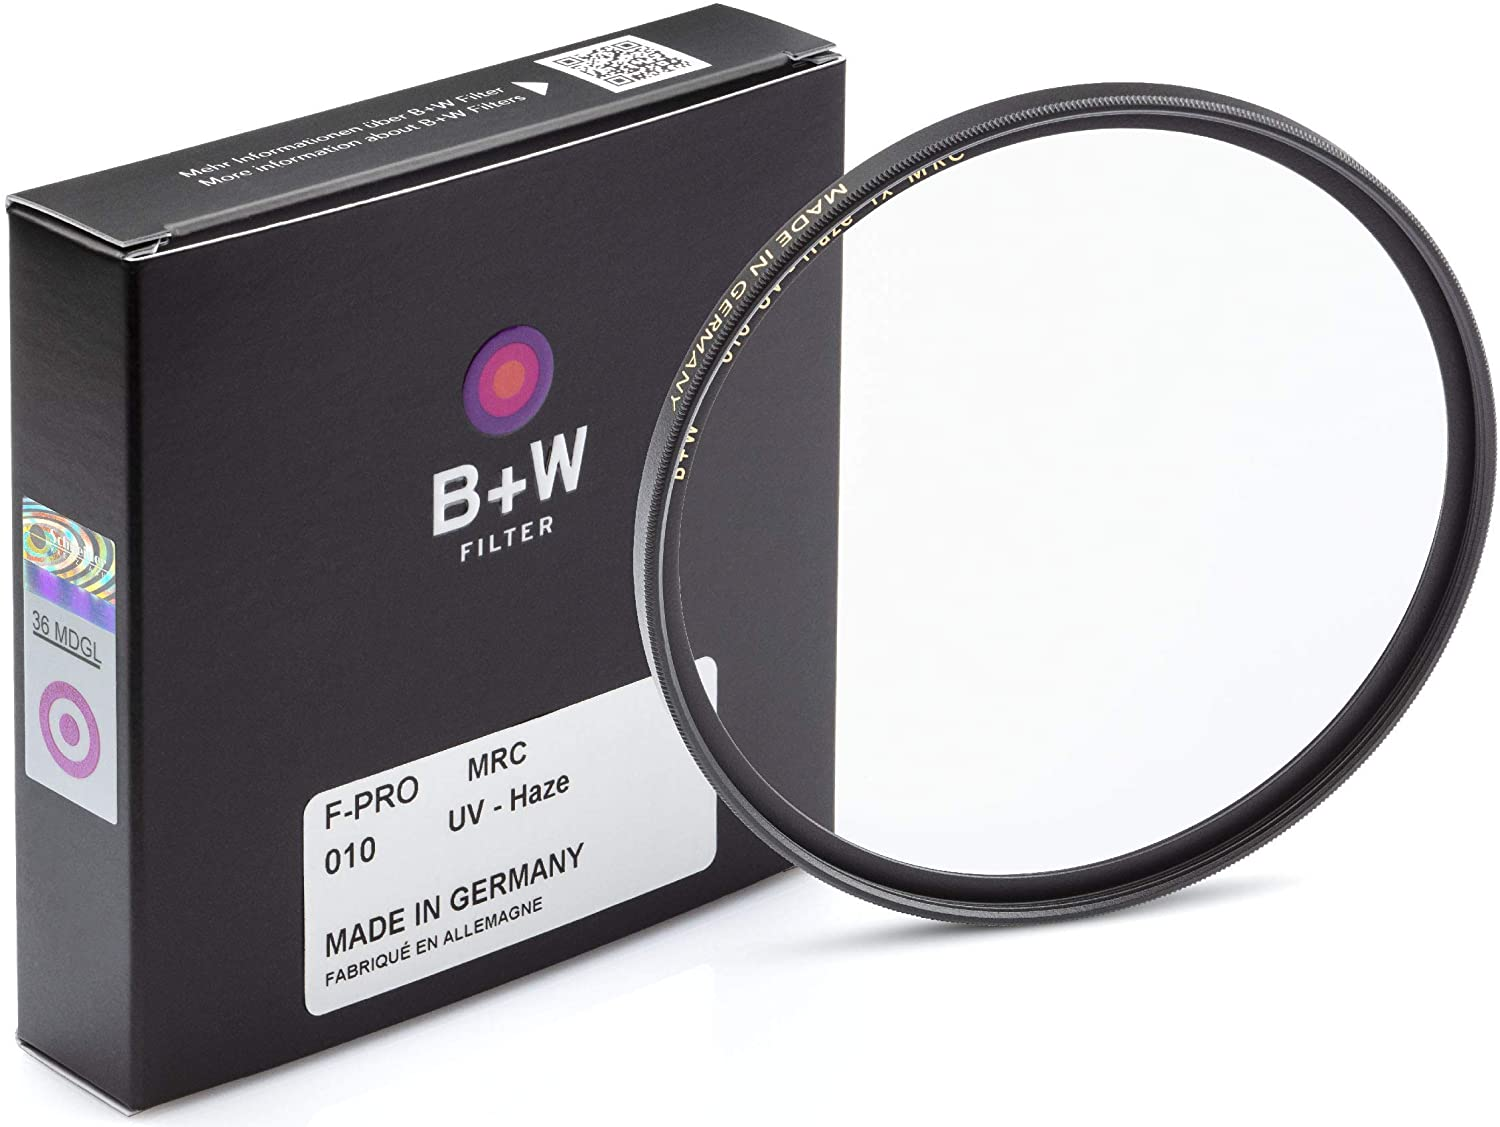 B + W 40.5mm UV Protection Filter (010) for Camera Lens – Standard Mount (F-PRO), MRC, 16 Layers Multi-Resistant Coating, Photography Filter, 40.5 mm, Clear Protector